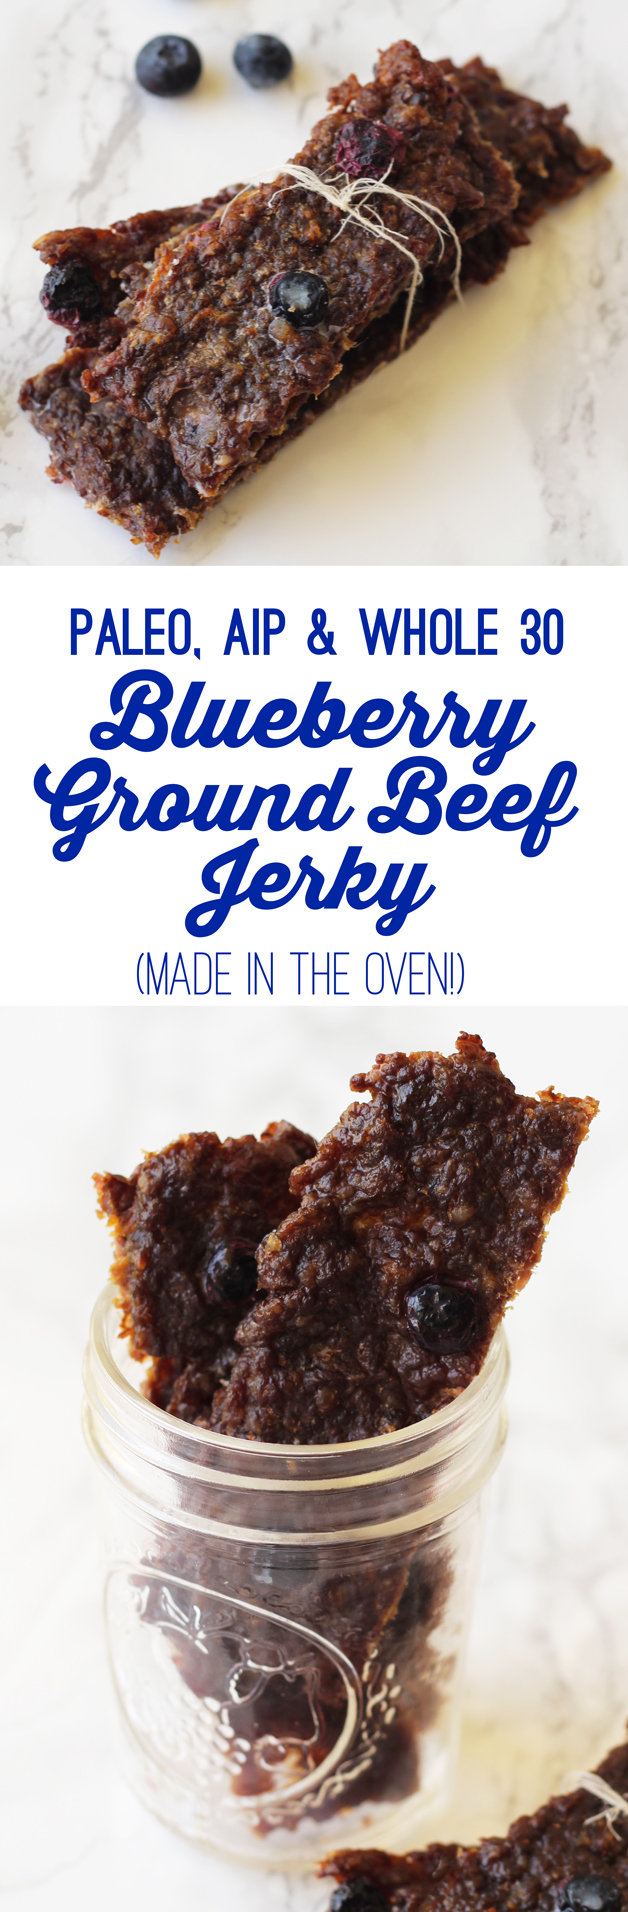 Blueberry Beef Jerky Made in The Oven with Ground Beef (Paleo, AIP, Whole 30)